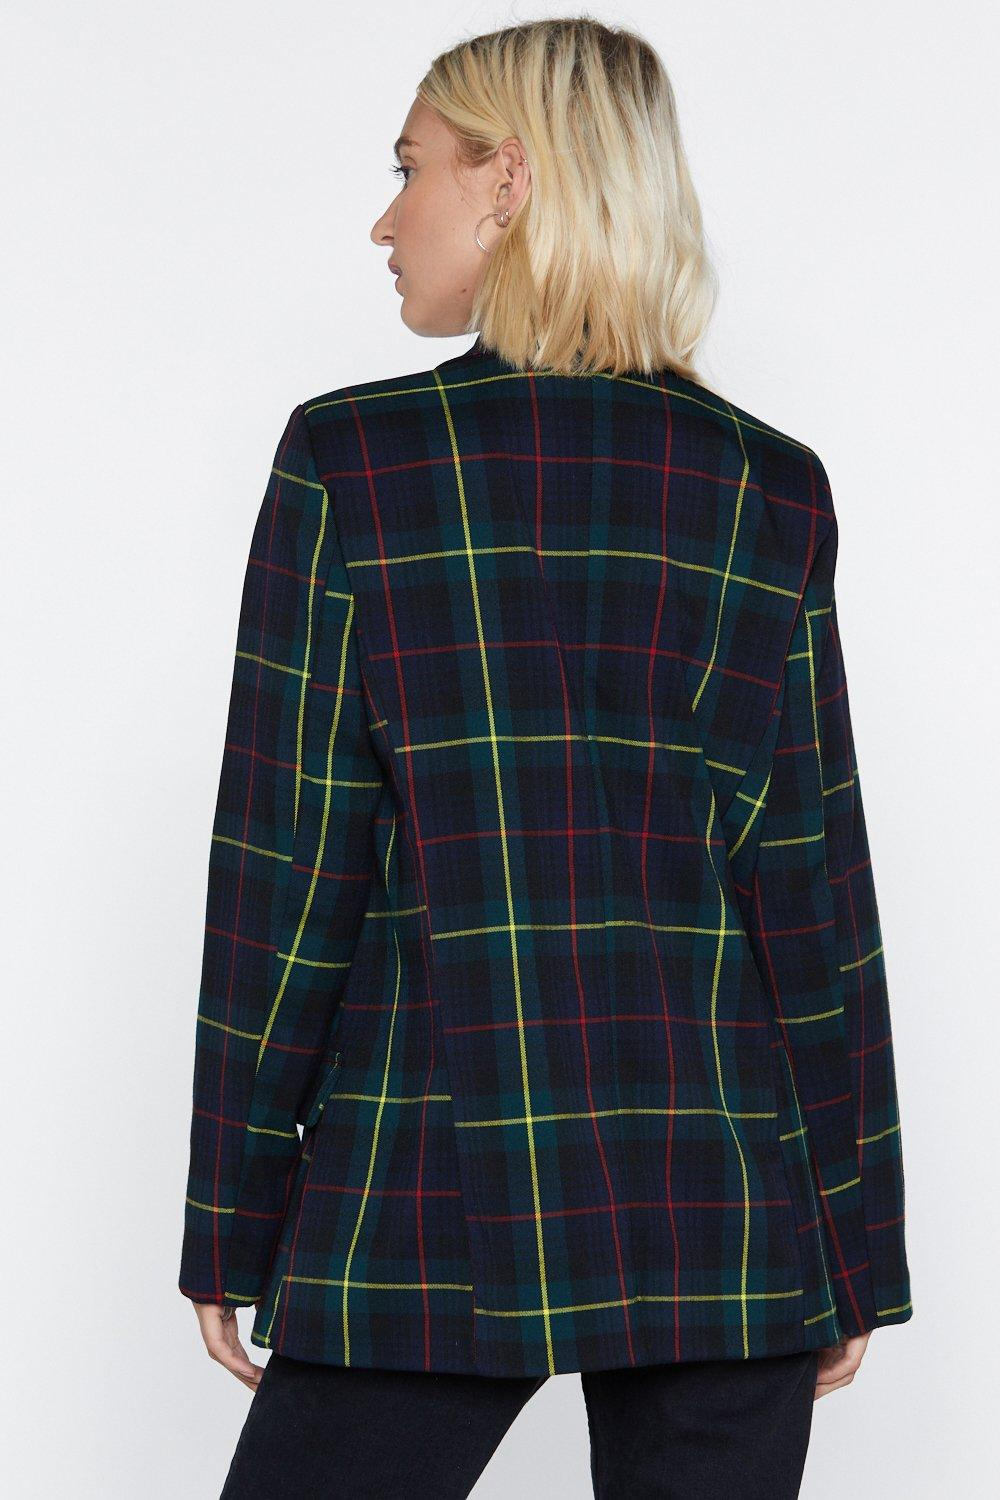 cd7964484 Let's Head Out Tartan Blazer   Shop Clothes at Nasty Gal!